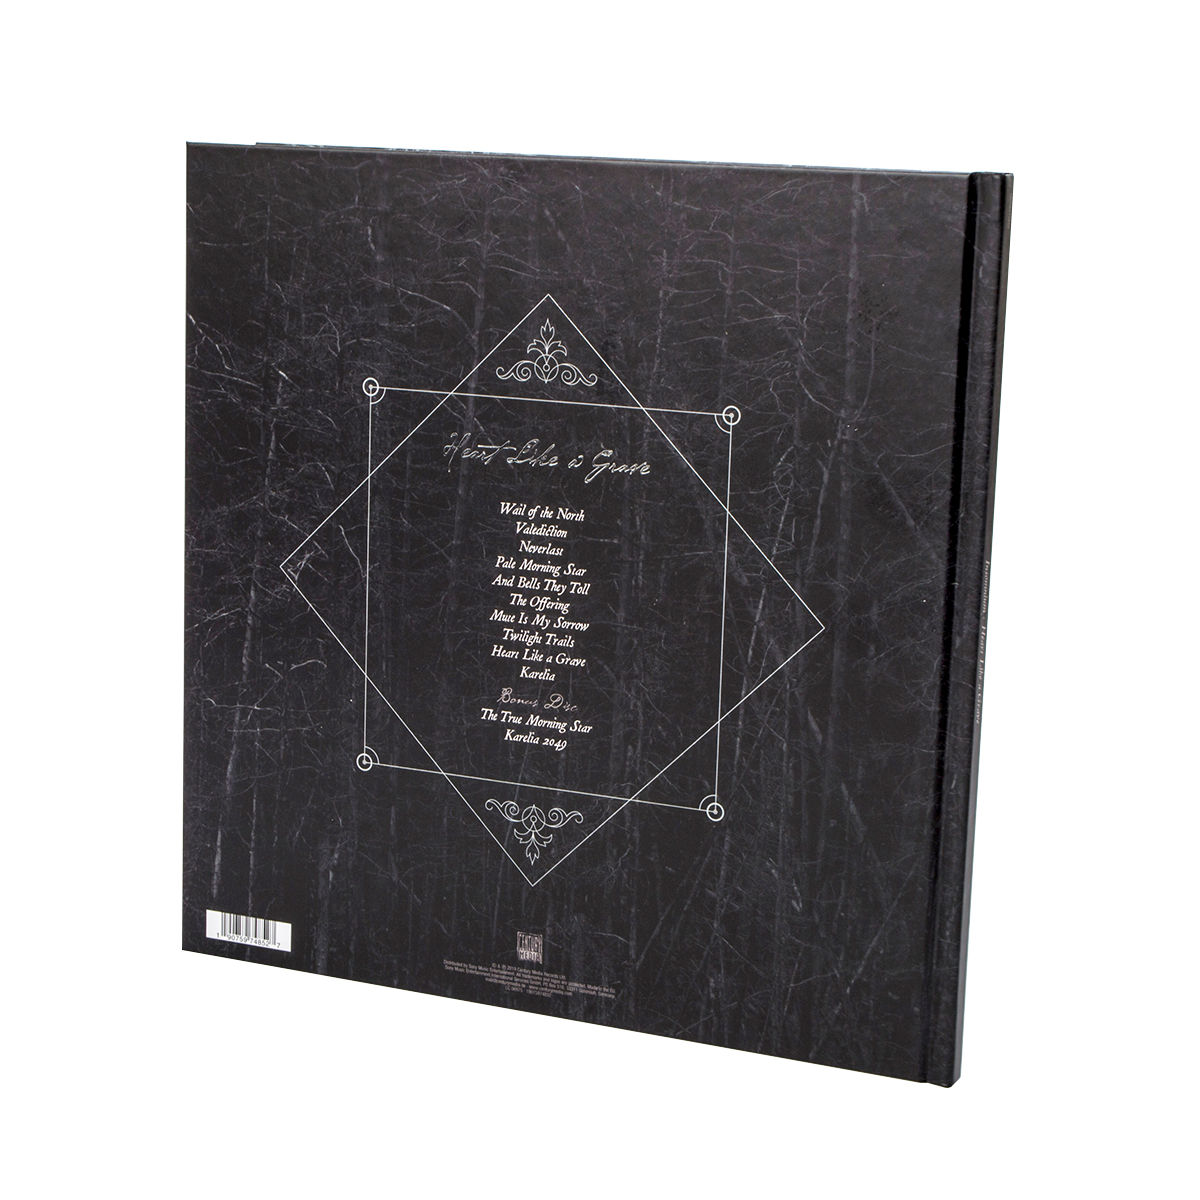 Insomnium - Heart Like A Grave Limited Deluxe 2-CD Artbook